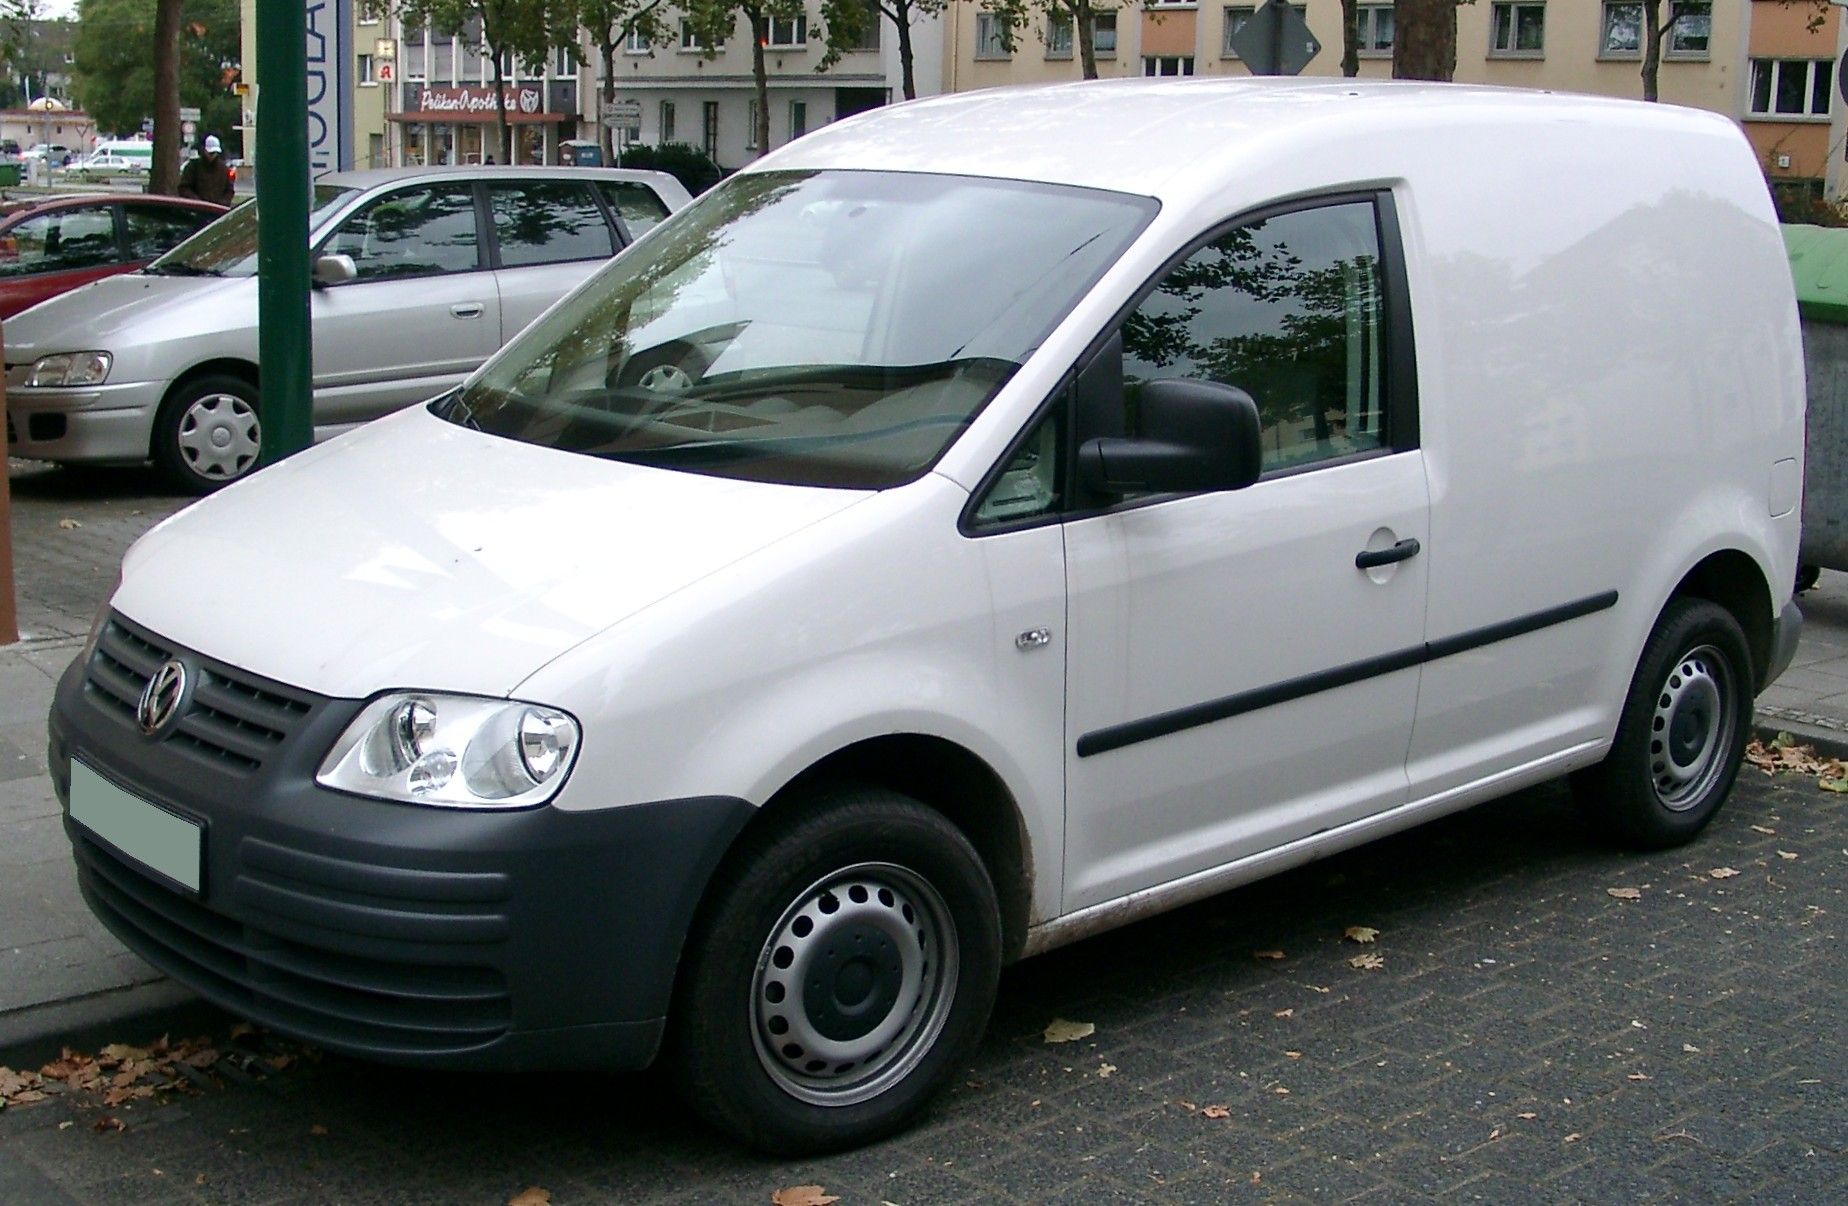 VW_Caddy_front_20071026.jpg